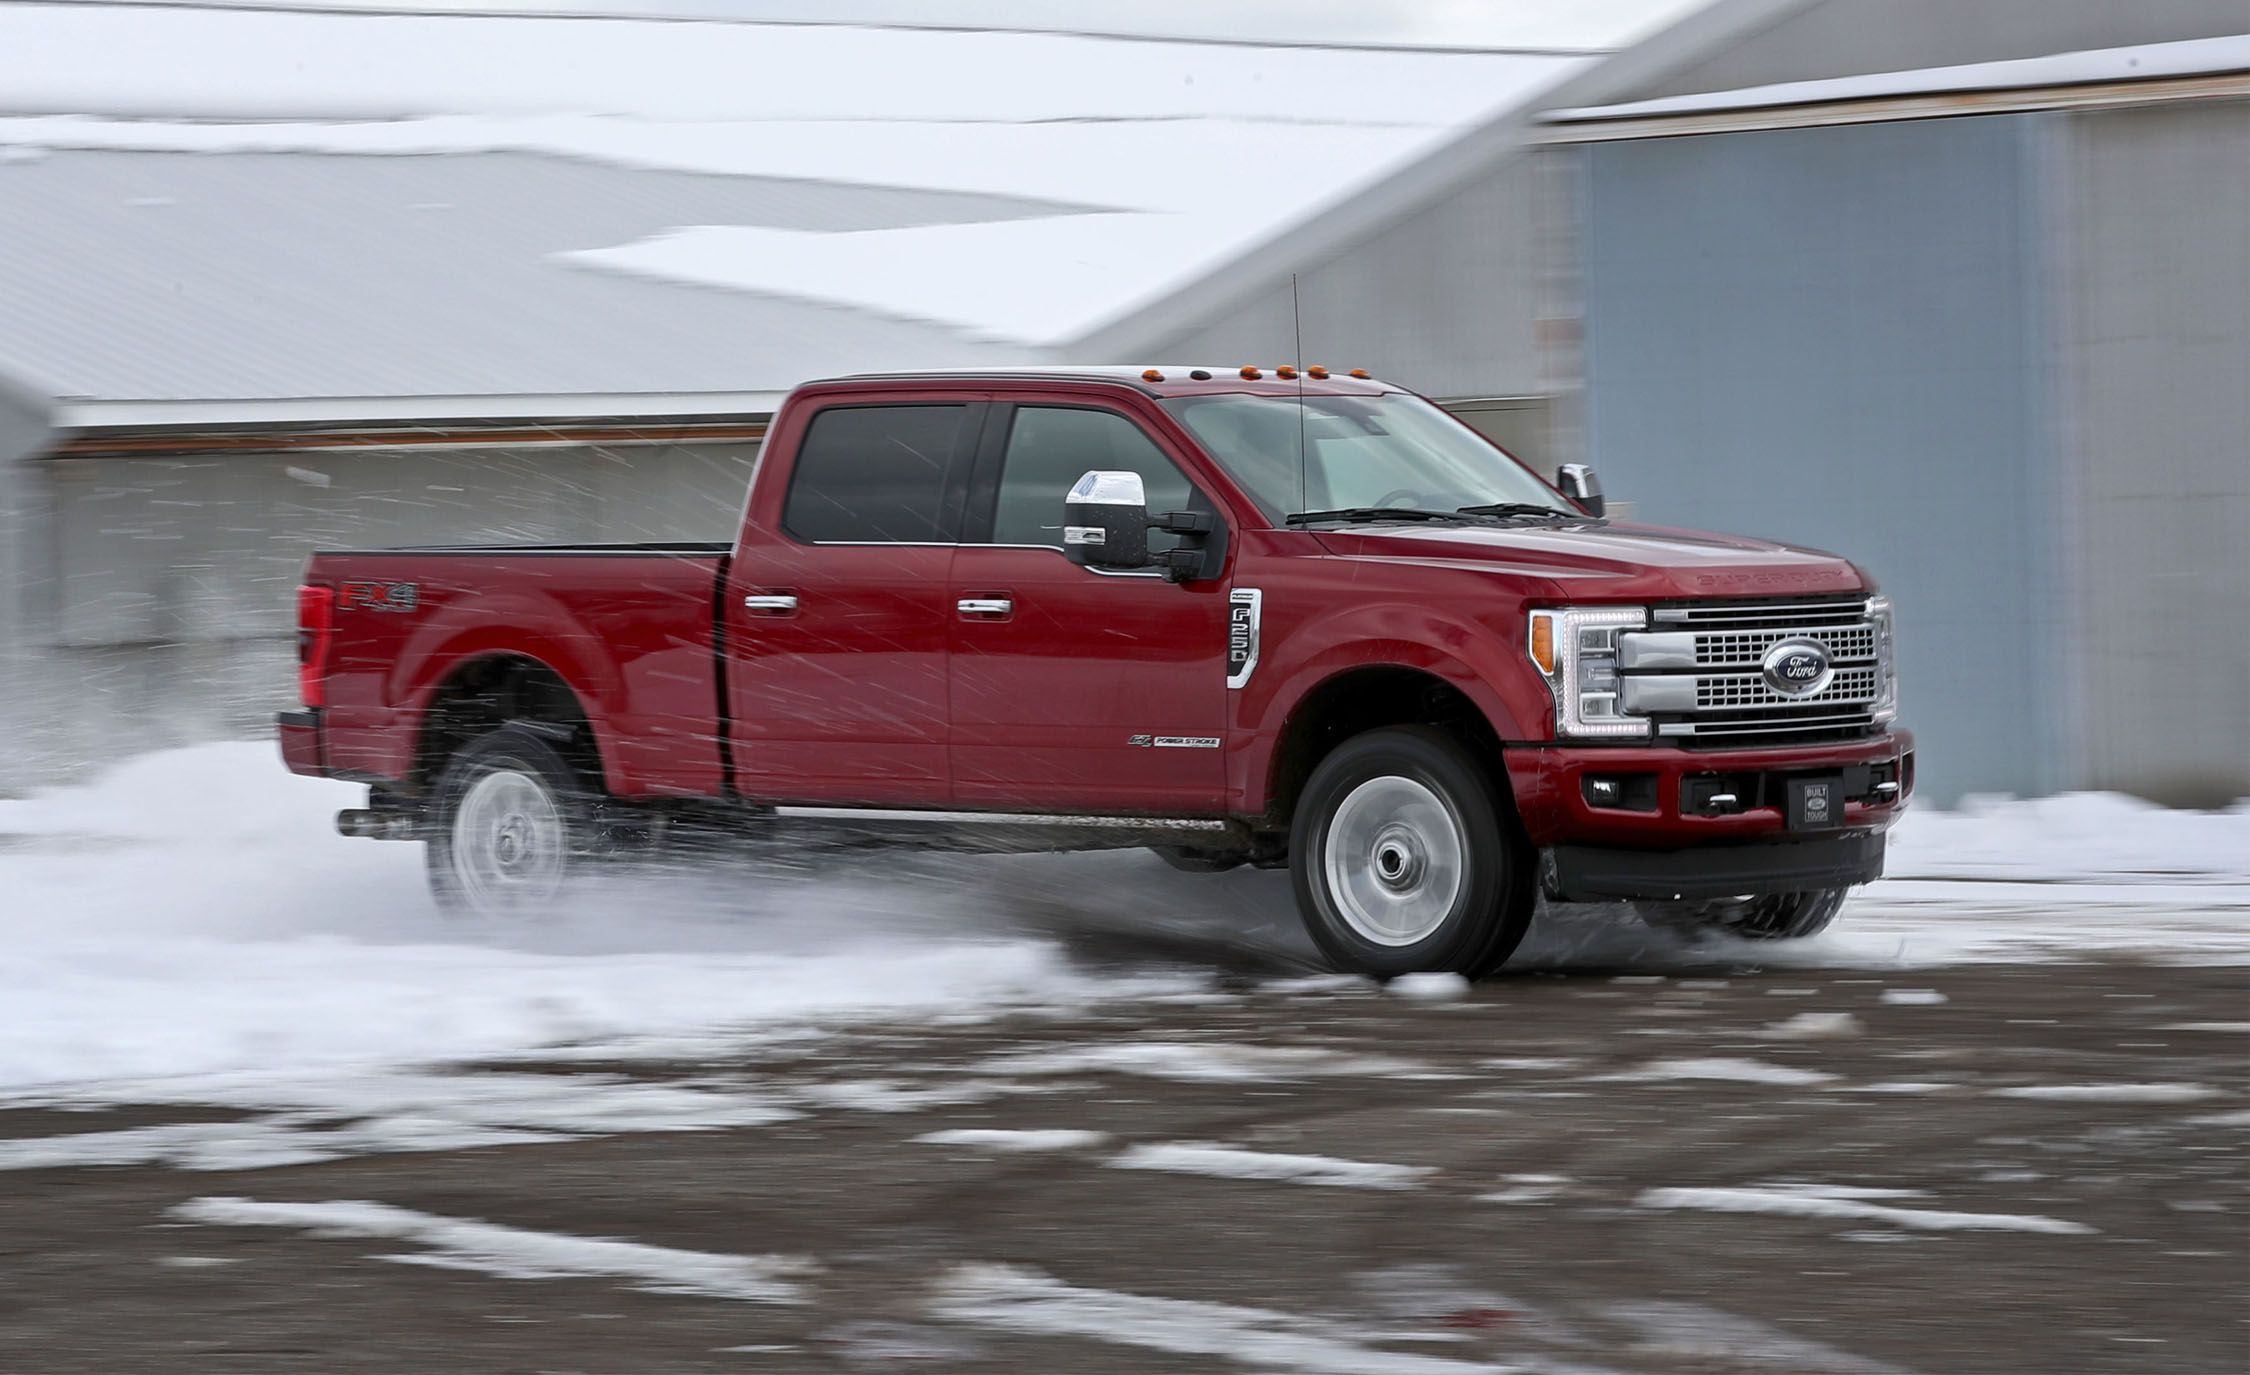 2017 Ford F-250 Super Duty Diesel 4x4 Crew Cab Test | Review | Car and Driver & 2017 Ford F-250 Super Duty Diesel 4x4 Crew Cab Test | Review | Car ... markmcfarlin.com